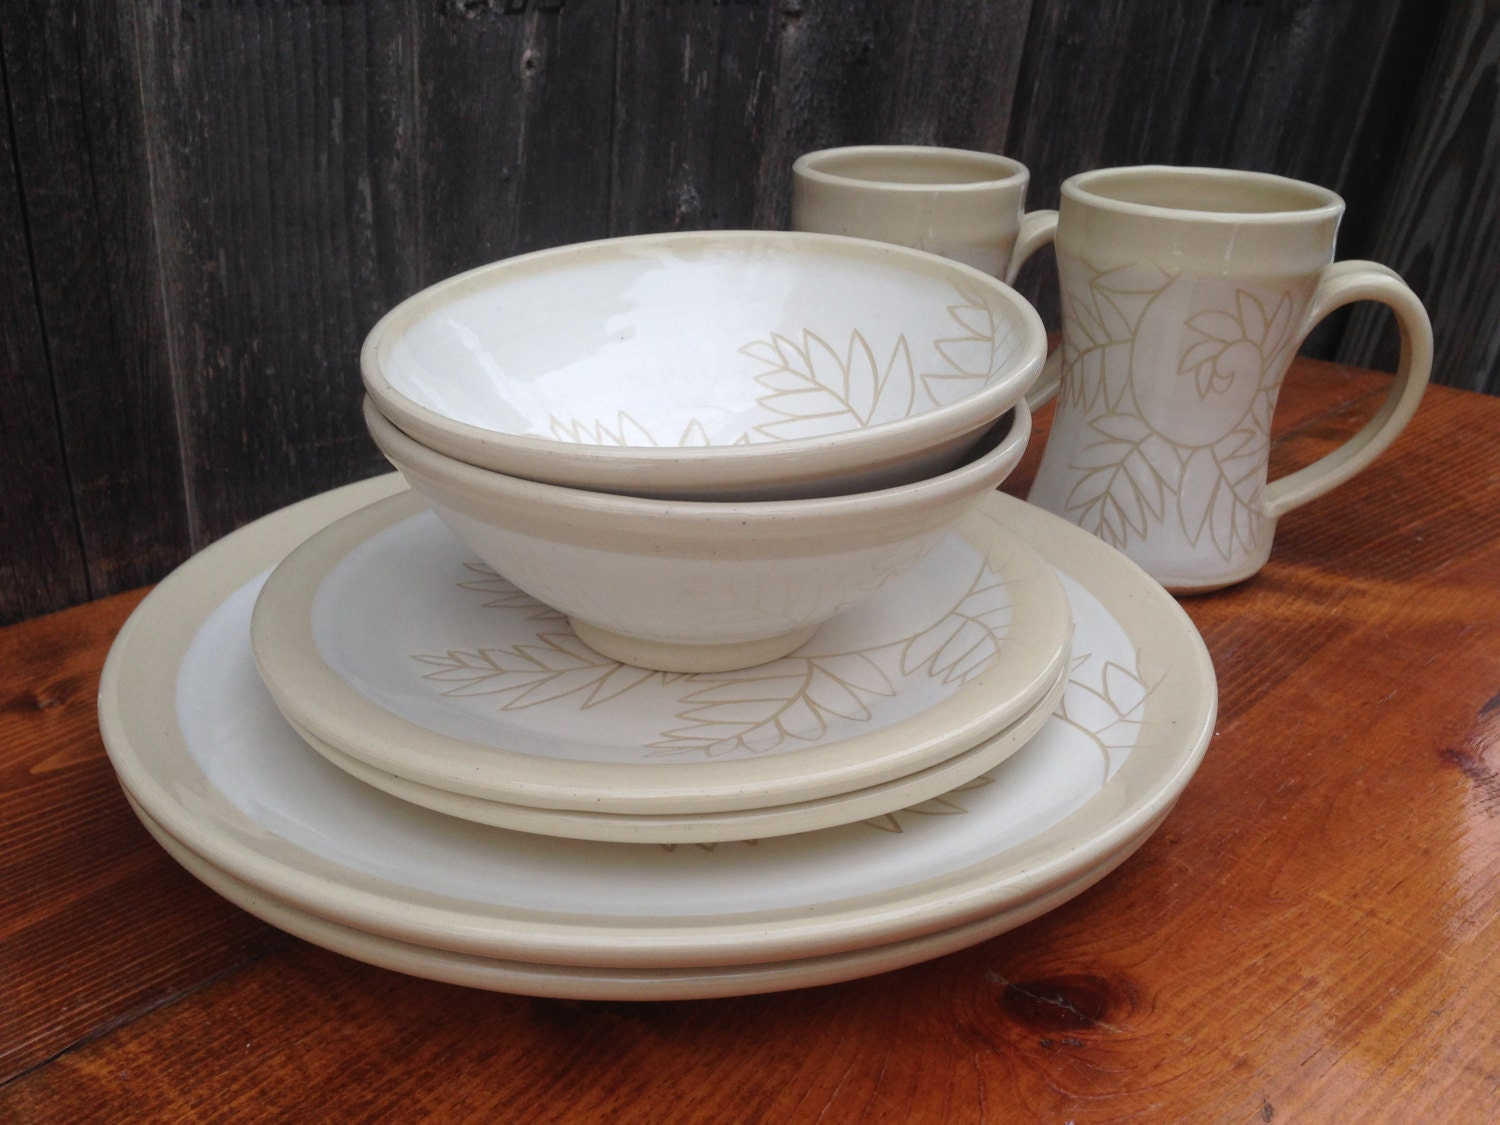 White Fern Pottery Dinnerware Sets for 2 people / 8 piece Handmade Place Settings